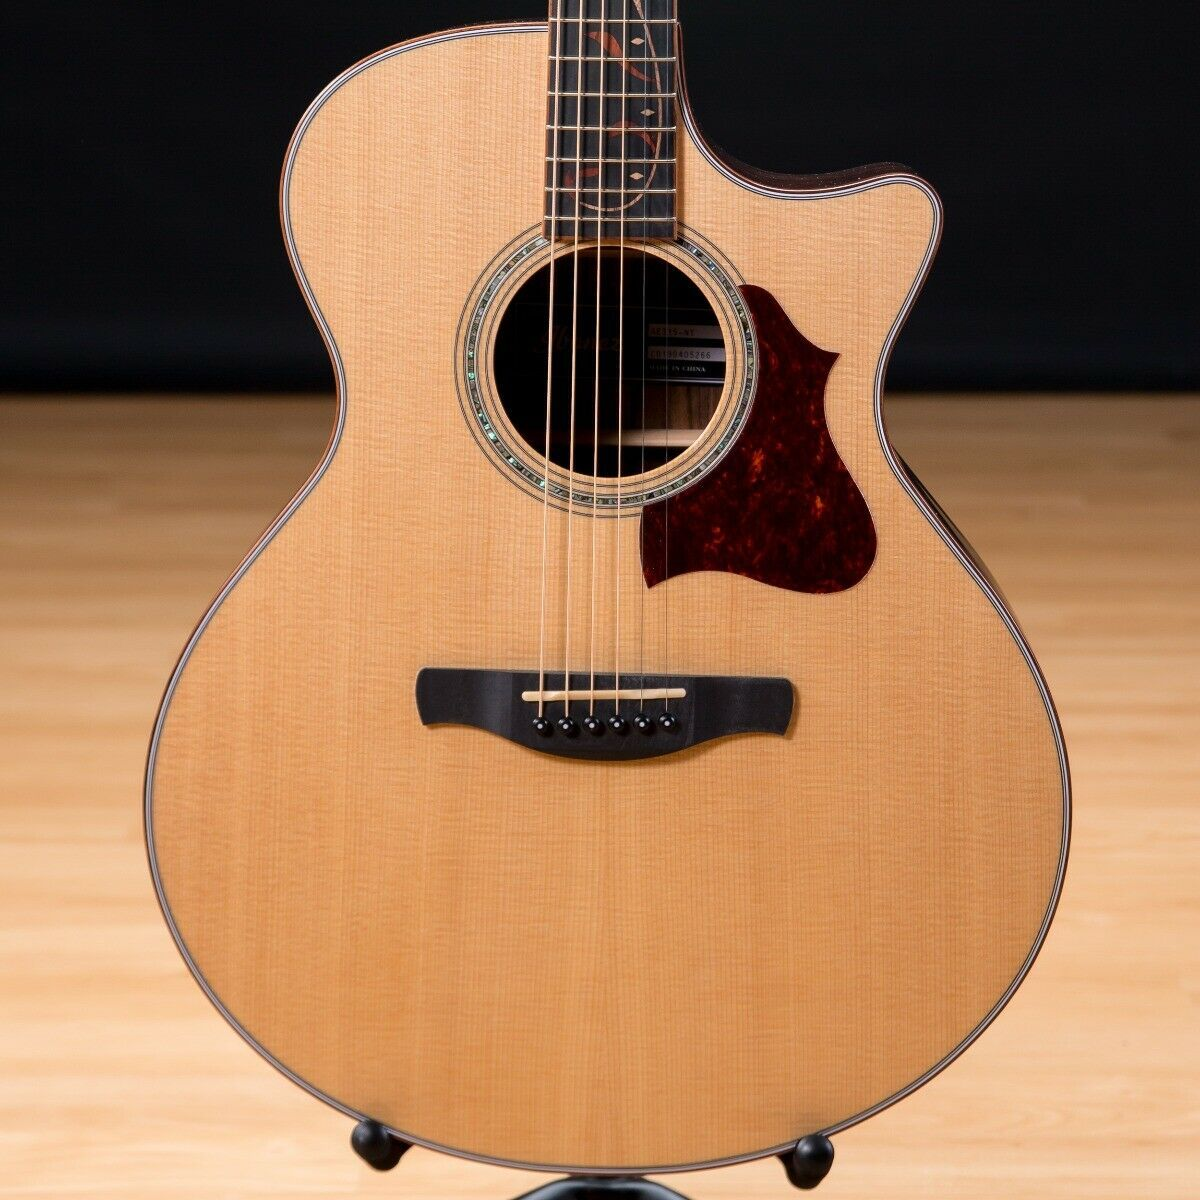 Ibanez Ae315 Acoustic Guitar Natural Sn 190405266 Ideas Of Guitar Guitar Ibanez Acoustic Guitar Guitar Acoustic Guitar